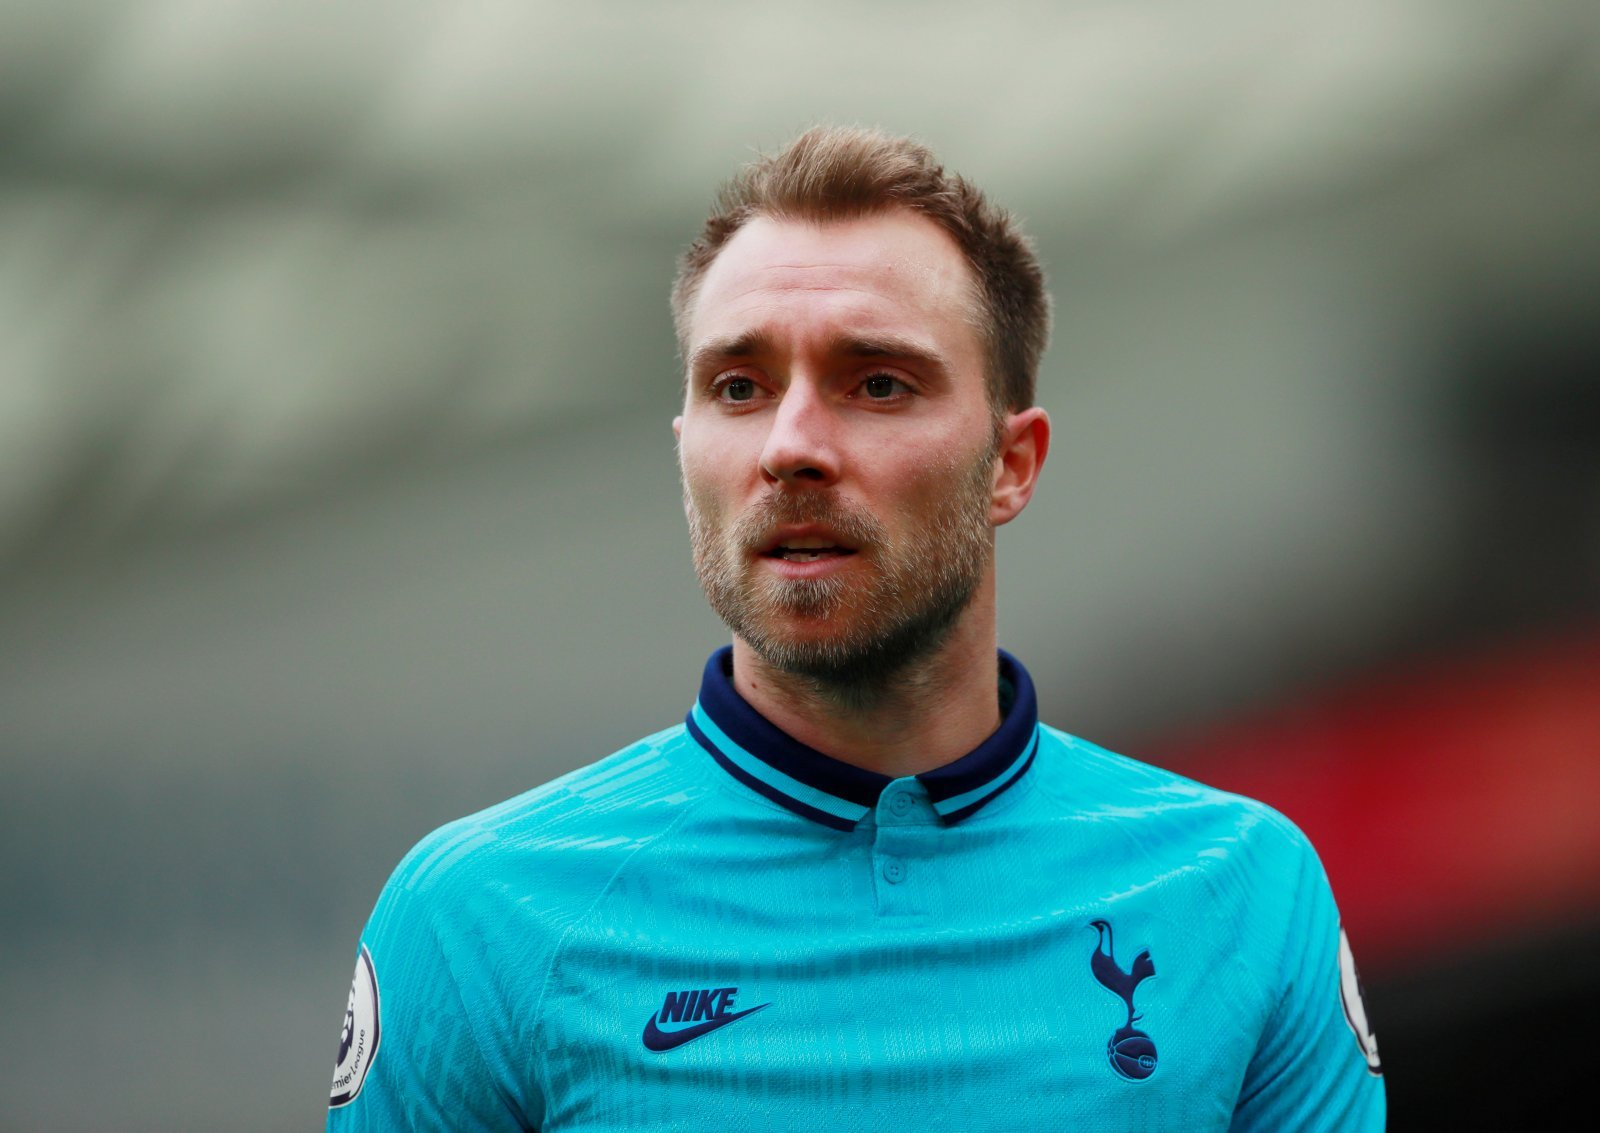 Tottenham Hotspur: Fans seething after these reports on Christian Eriksen appear